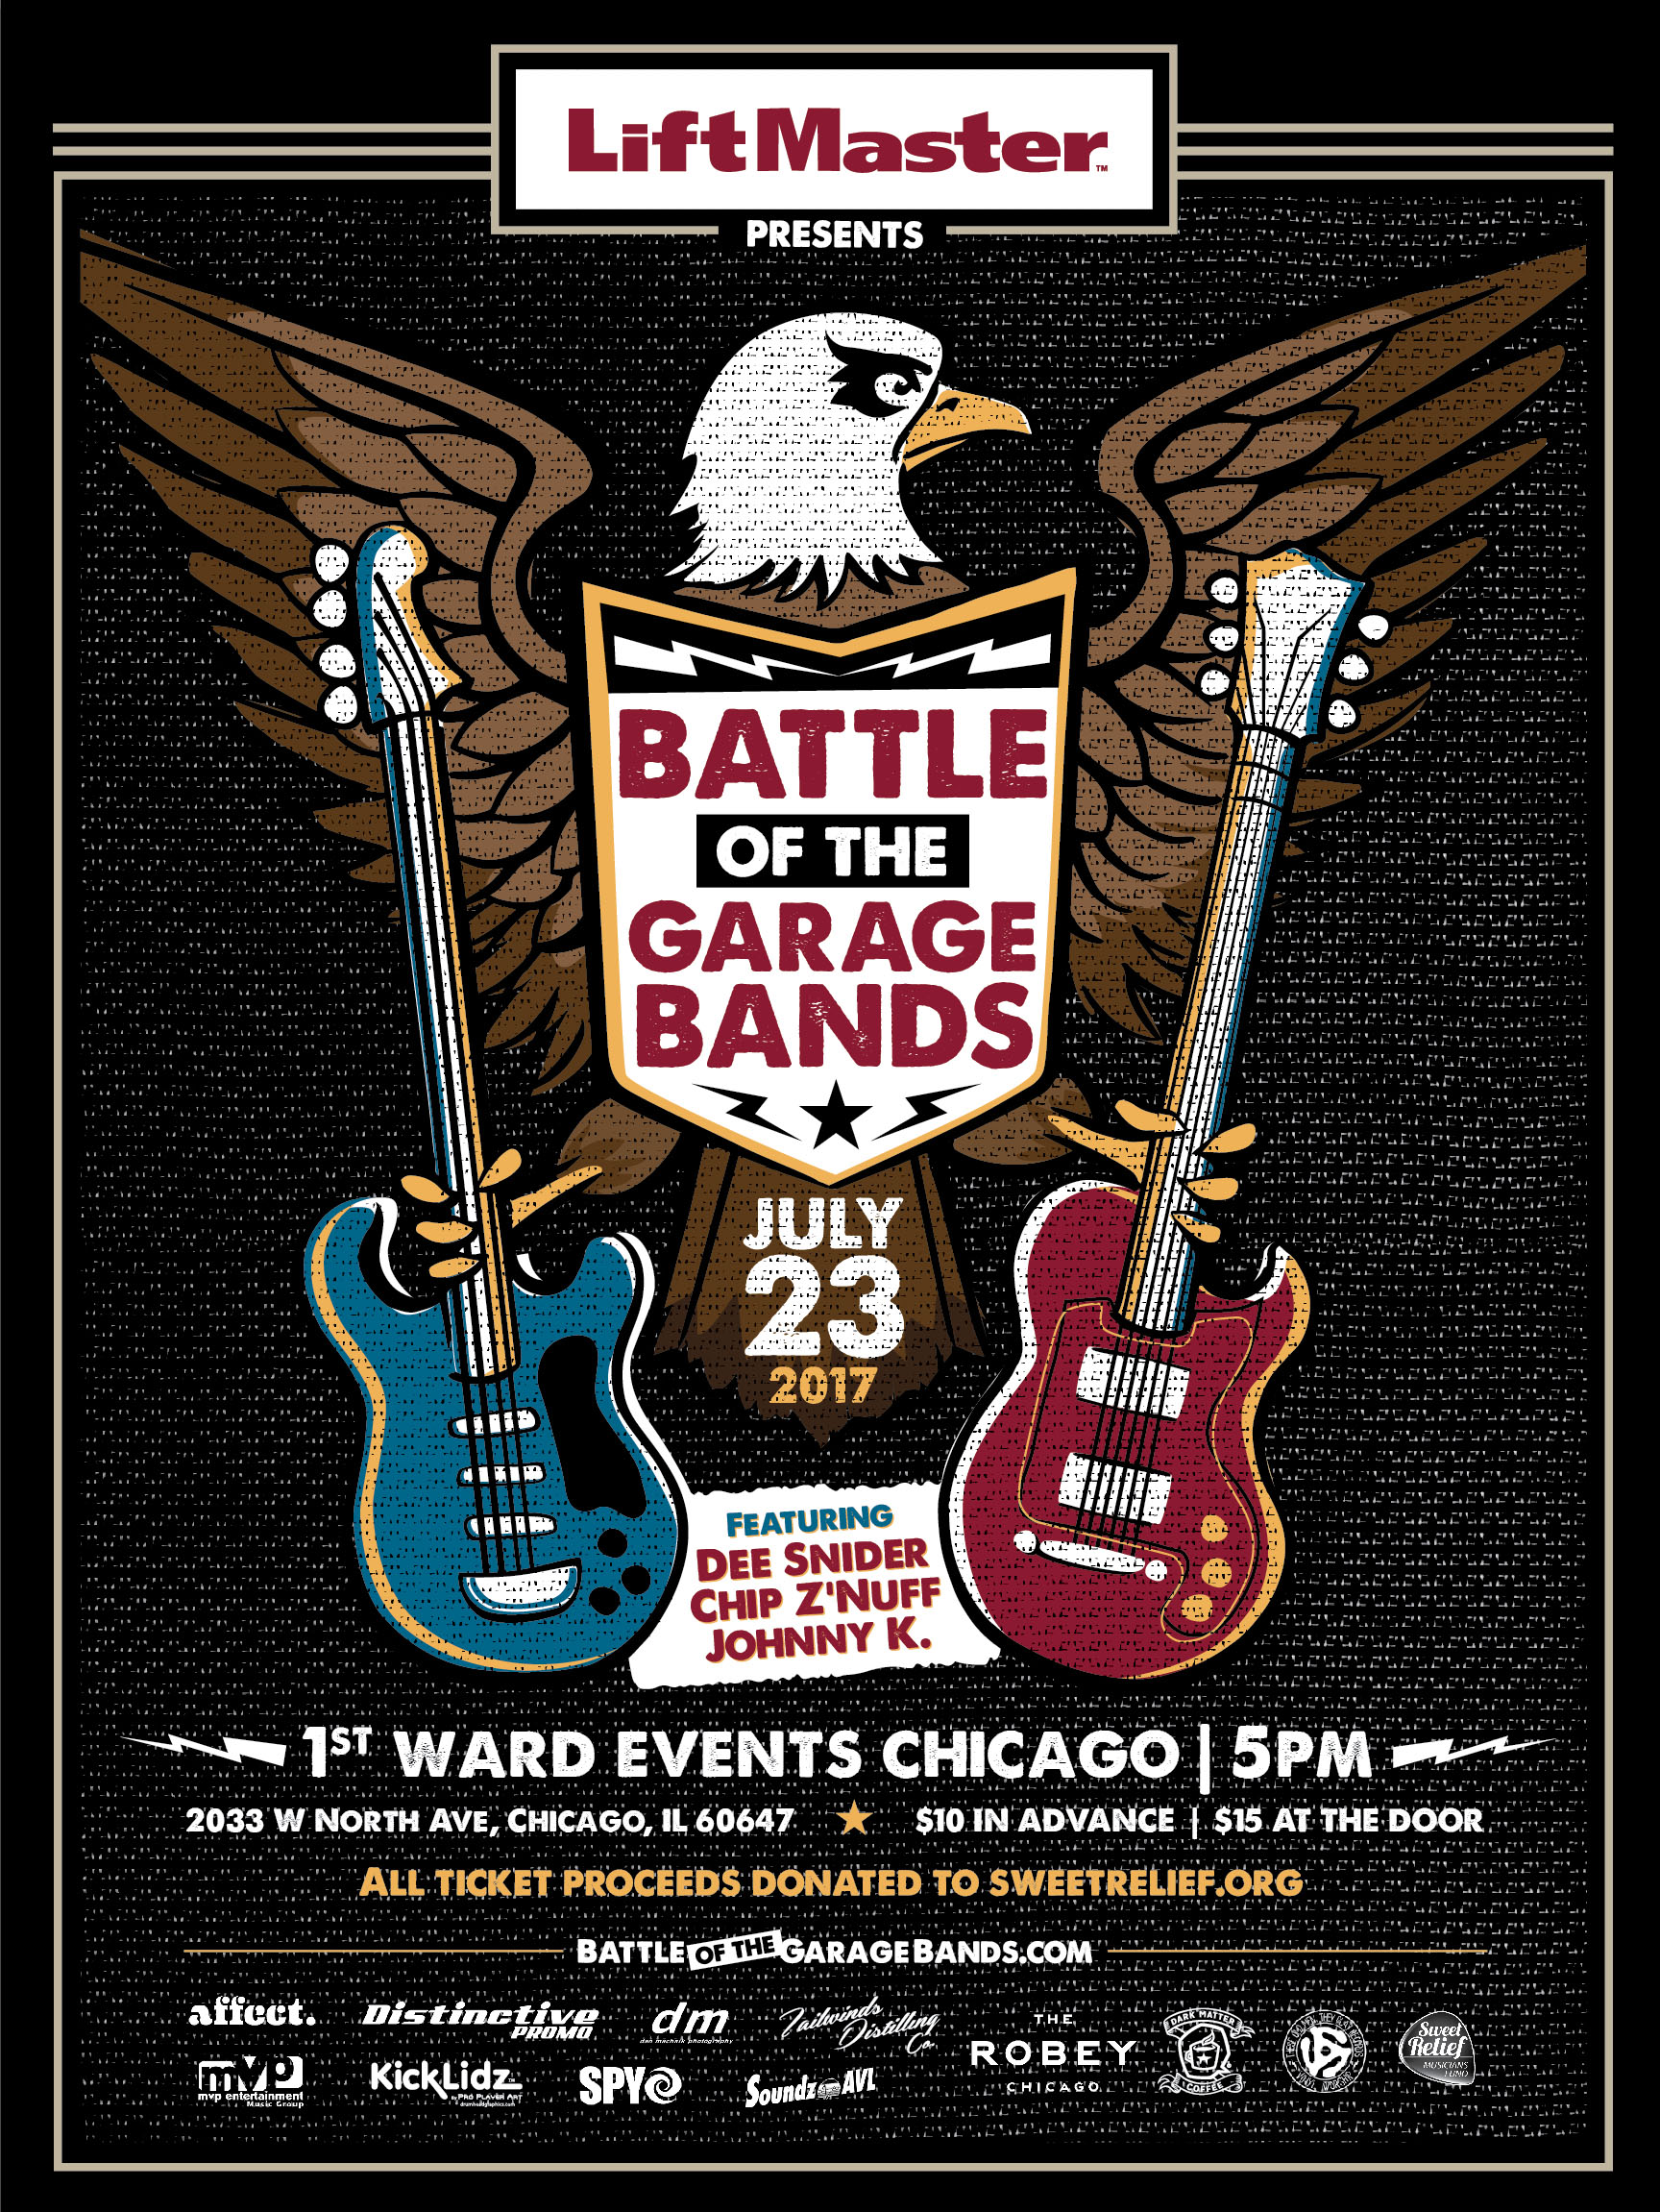 Liftmaster Presents Battle of the Garage Bands